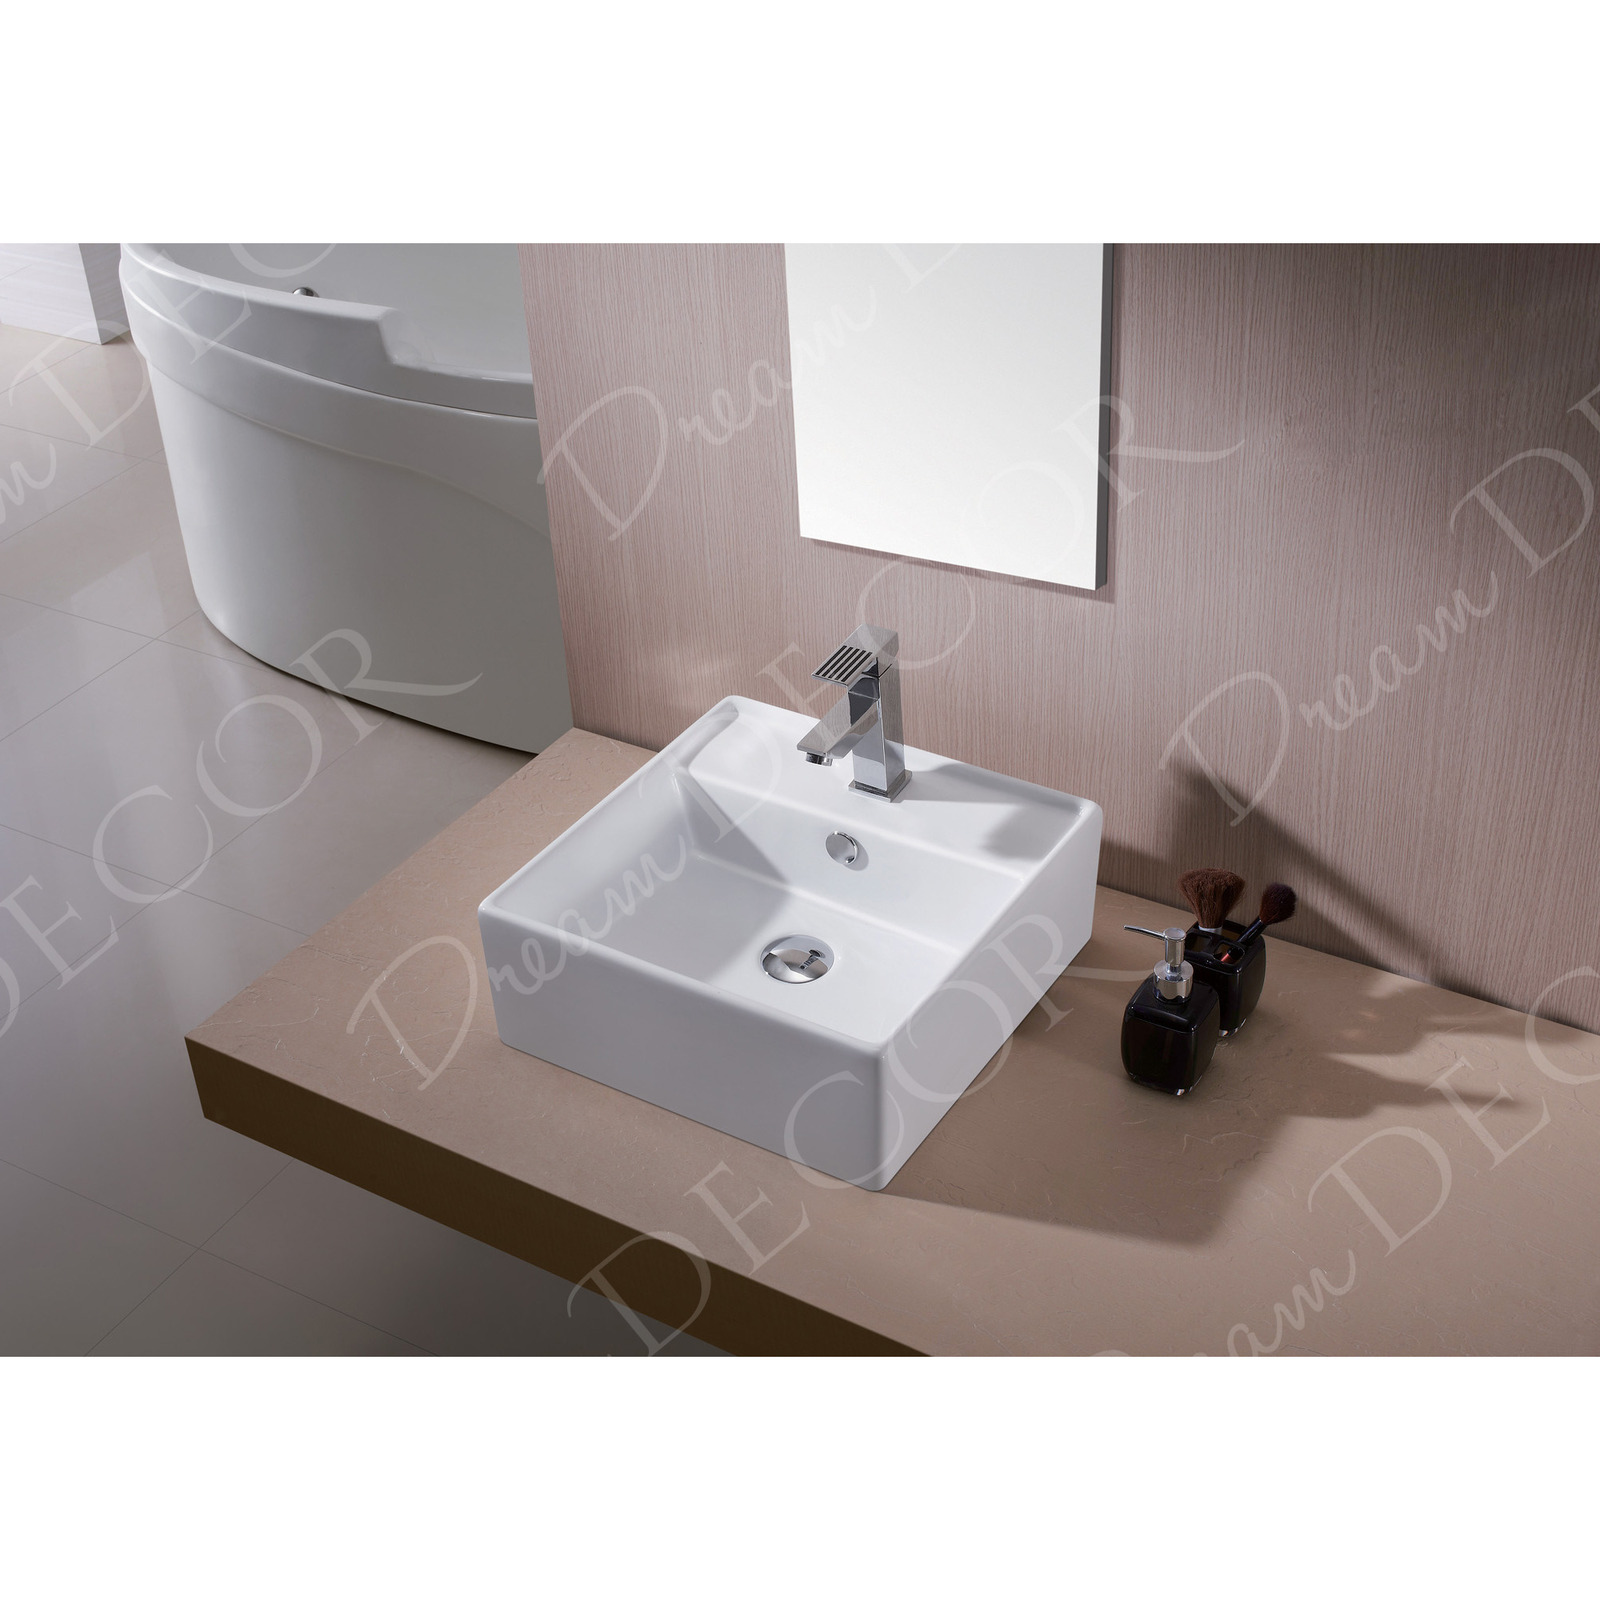 Ceramic Sink Basin Faucet Amp Overflow Hole Bathroom White Www Vidaxl